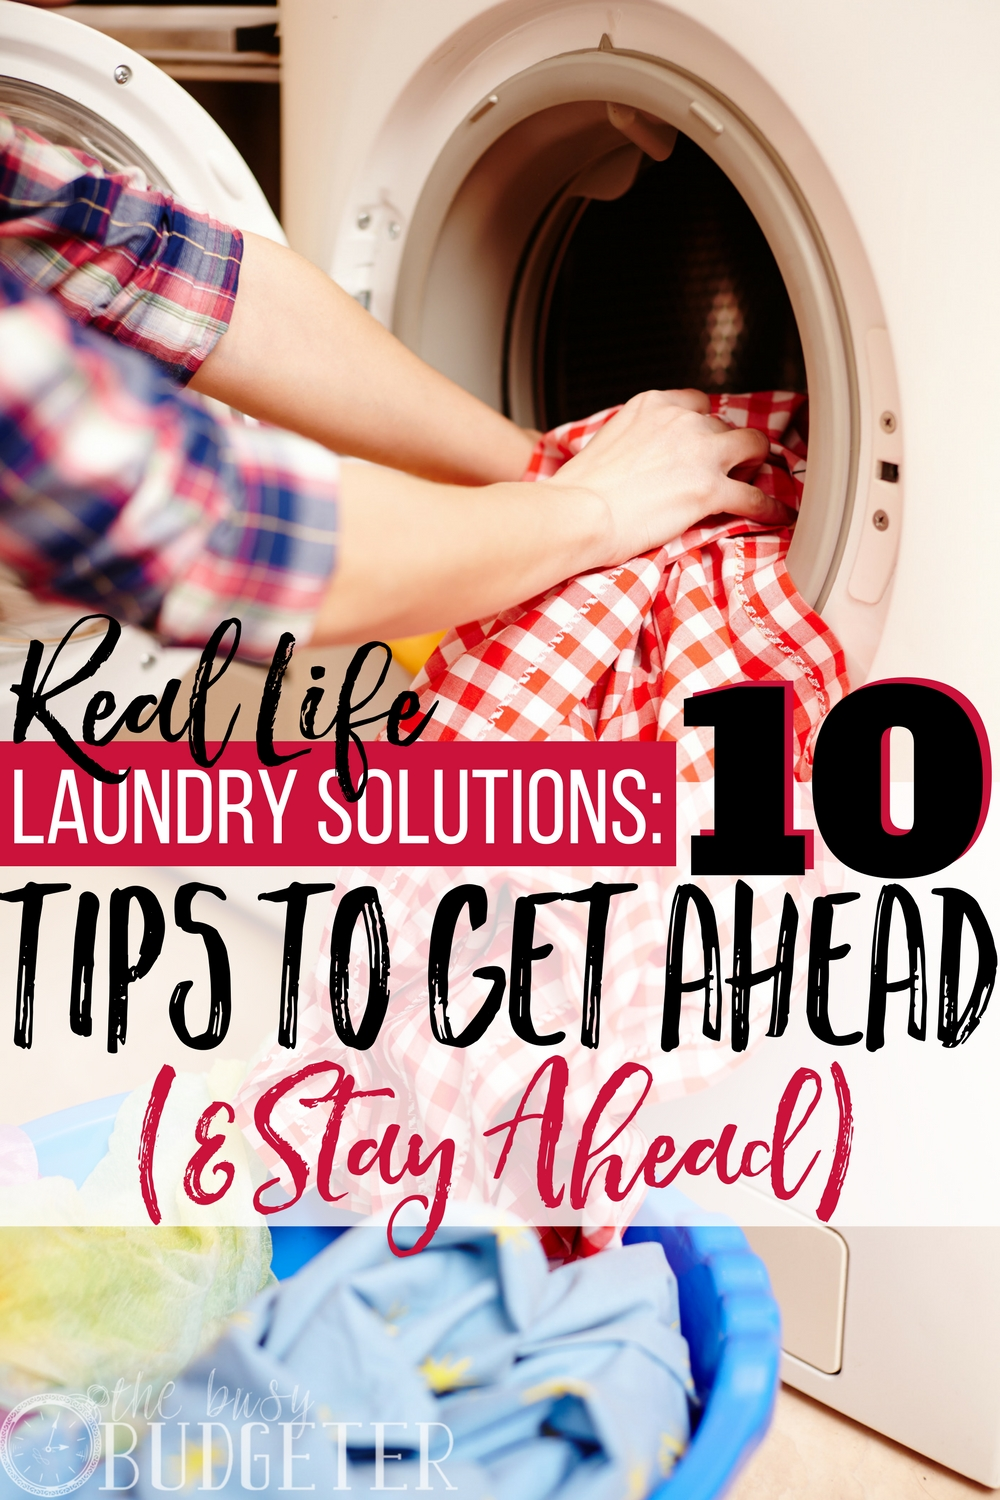 I really didn't think these tips would work for me. I almost always have five loads of laundry waiting to be folded but these laundry solutions were not only practical but super easy to implement! I almost can't believe that I'm actually caught up right now!! Let's hope it helps me keep my laundry a little more organized!